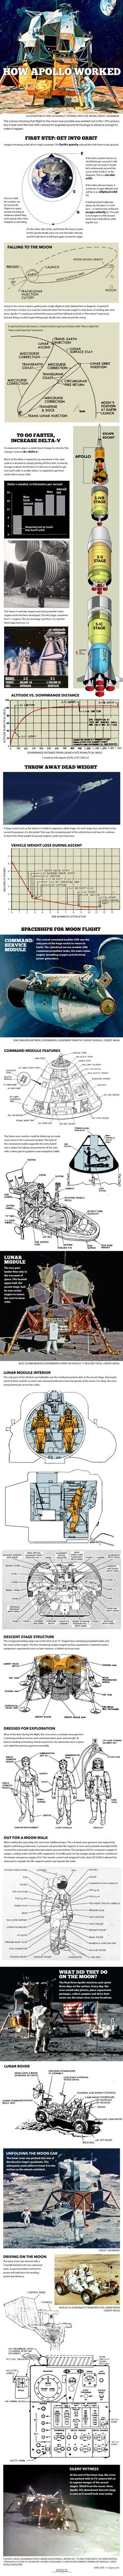 The Apollo Moon Landings: How They Worked (Infographic)